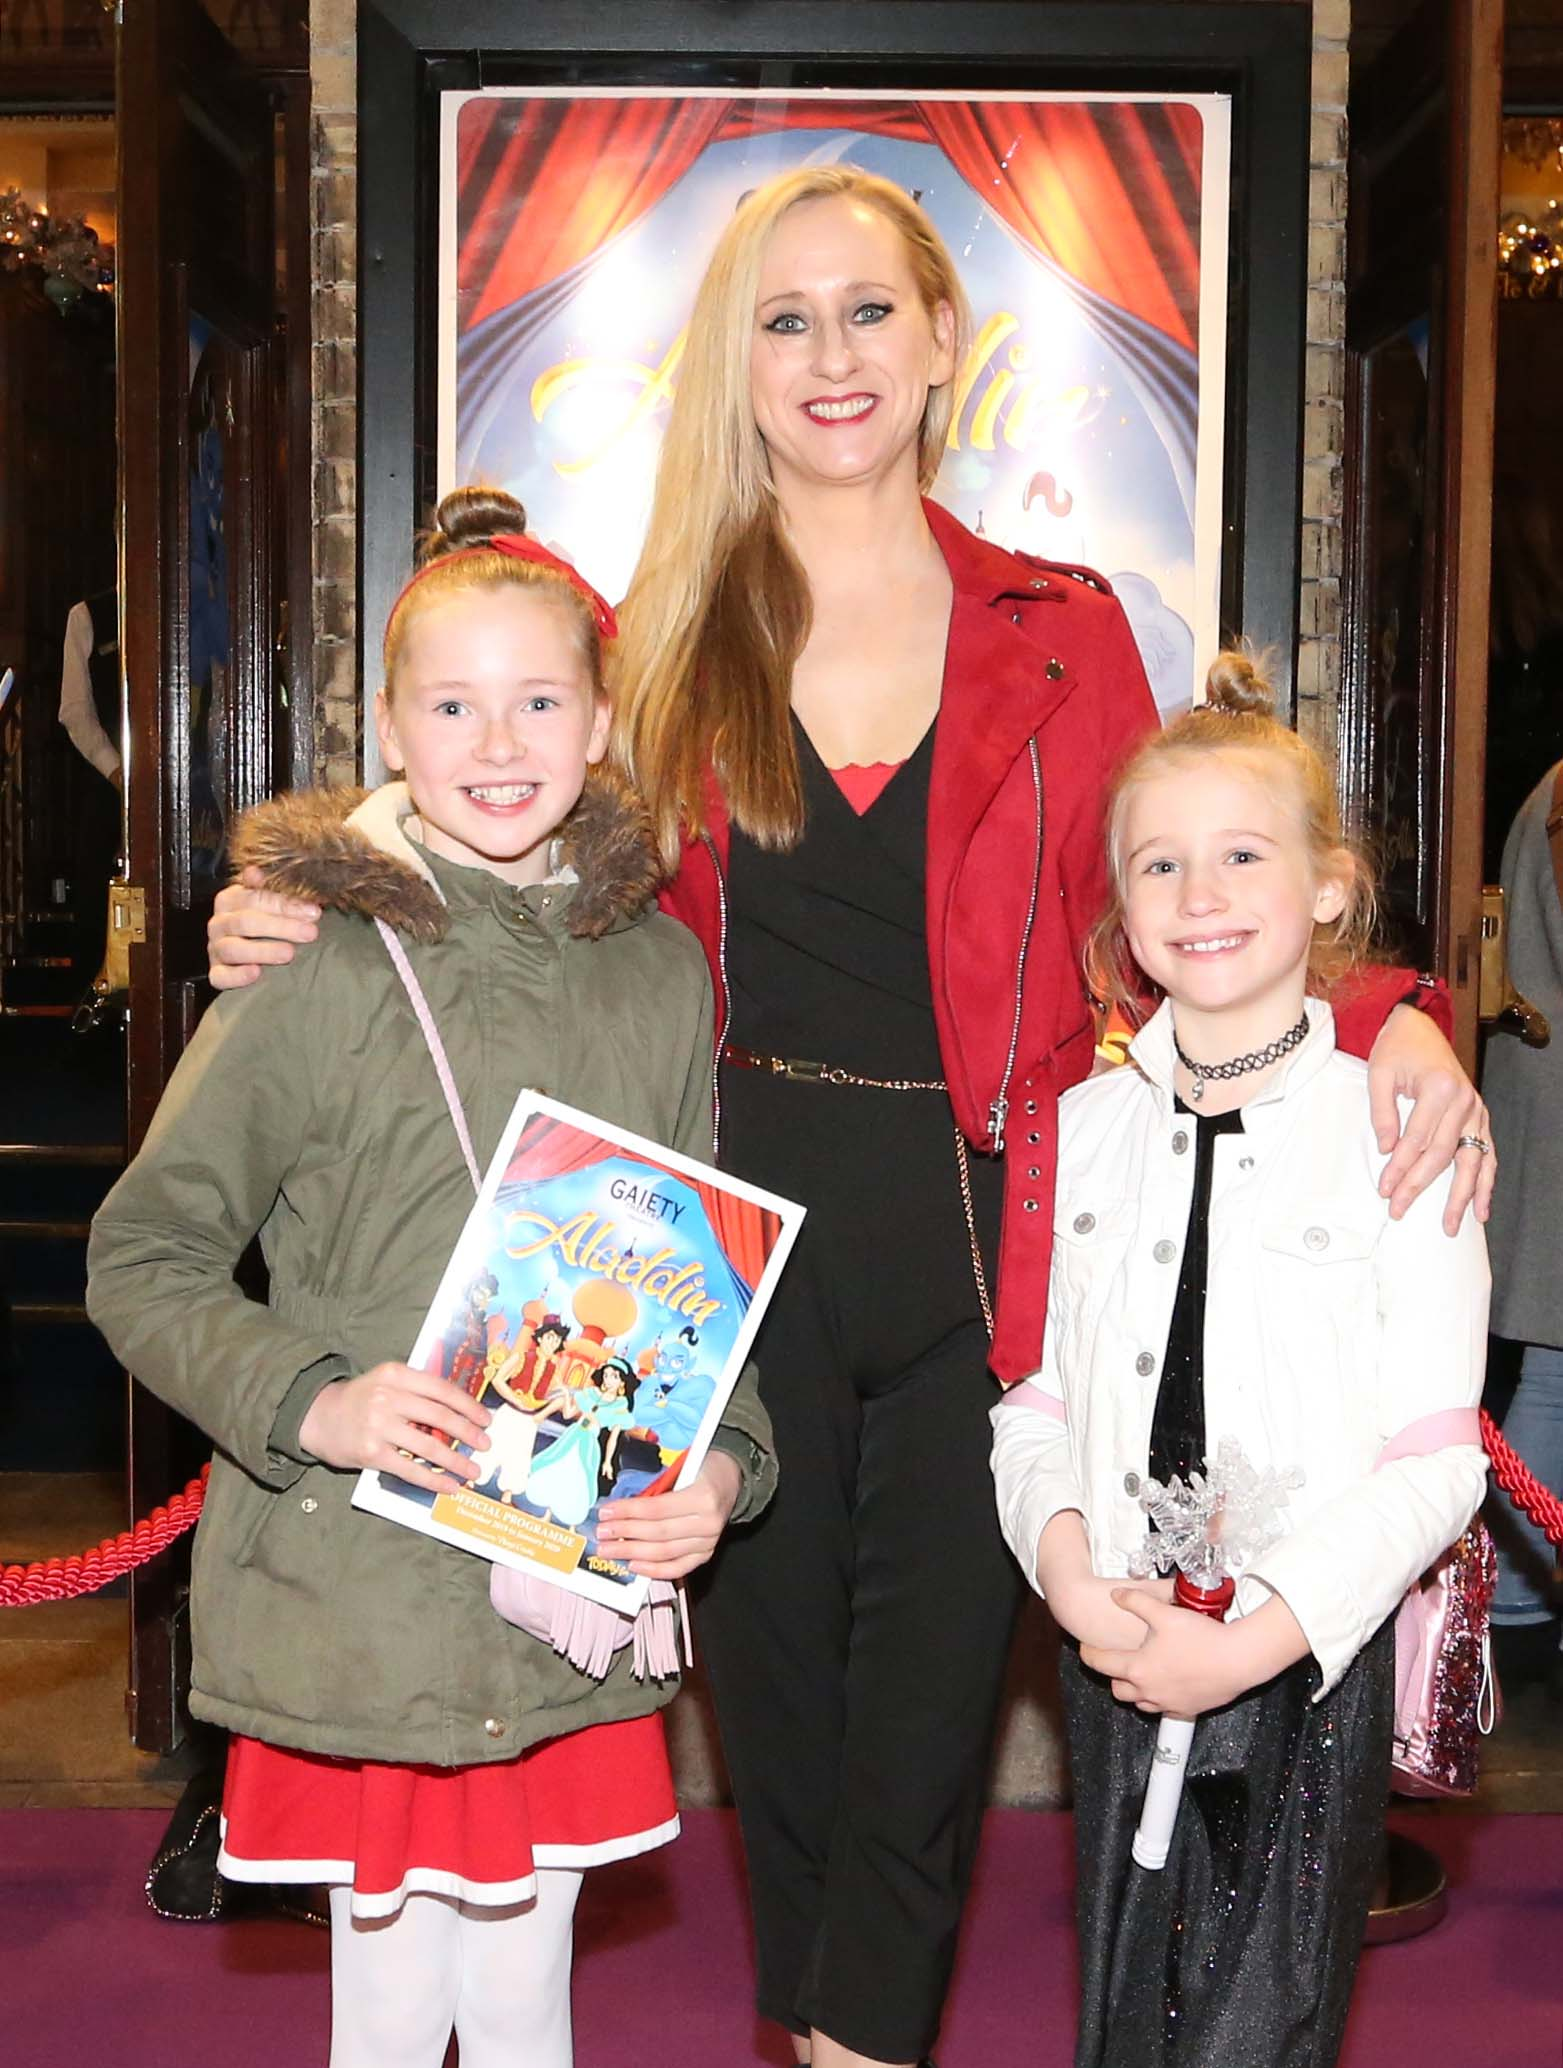 Pictured are (LtoR) Grace and Maggie Cassidy and Caroline Grace Cassidy at the official opening of the Gaiety Theatre Christmas Panto, Aladdin. Aladdin opens at the Gaiety Theatre Sunday 24th November. Photo: Sasko Lazarov/Photocall Ireland